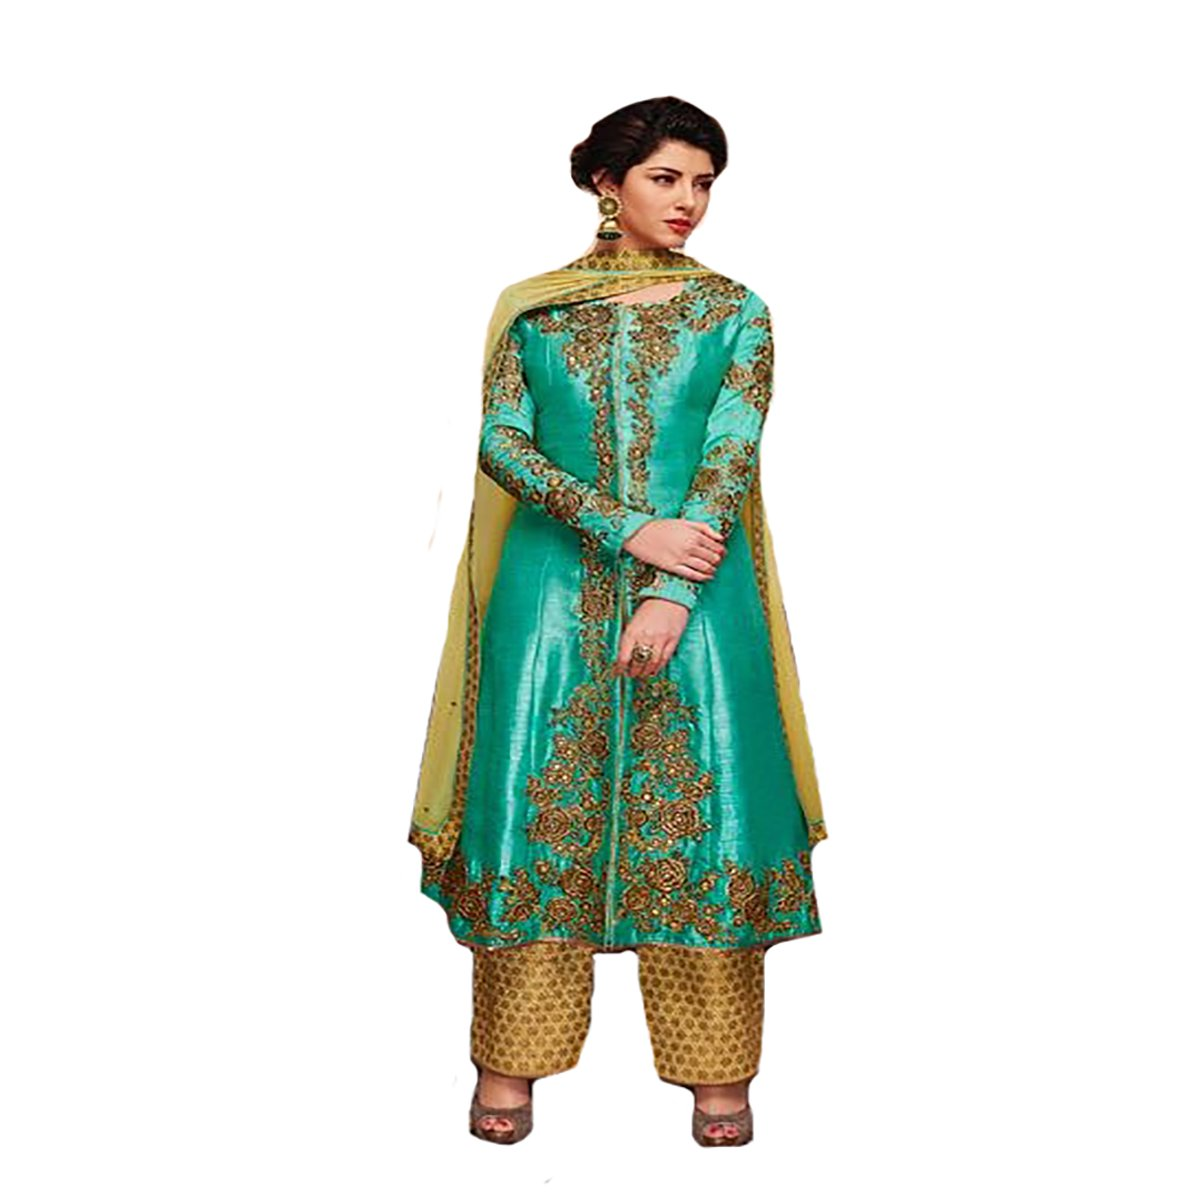 New Launch Collection Indian Straight Salwar Kameez suit Ceremony wedding